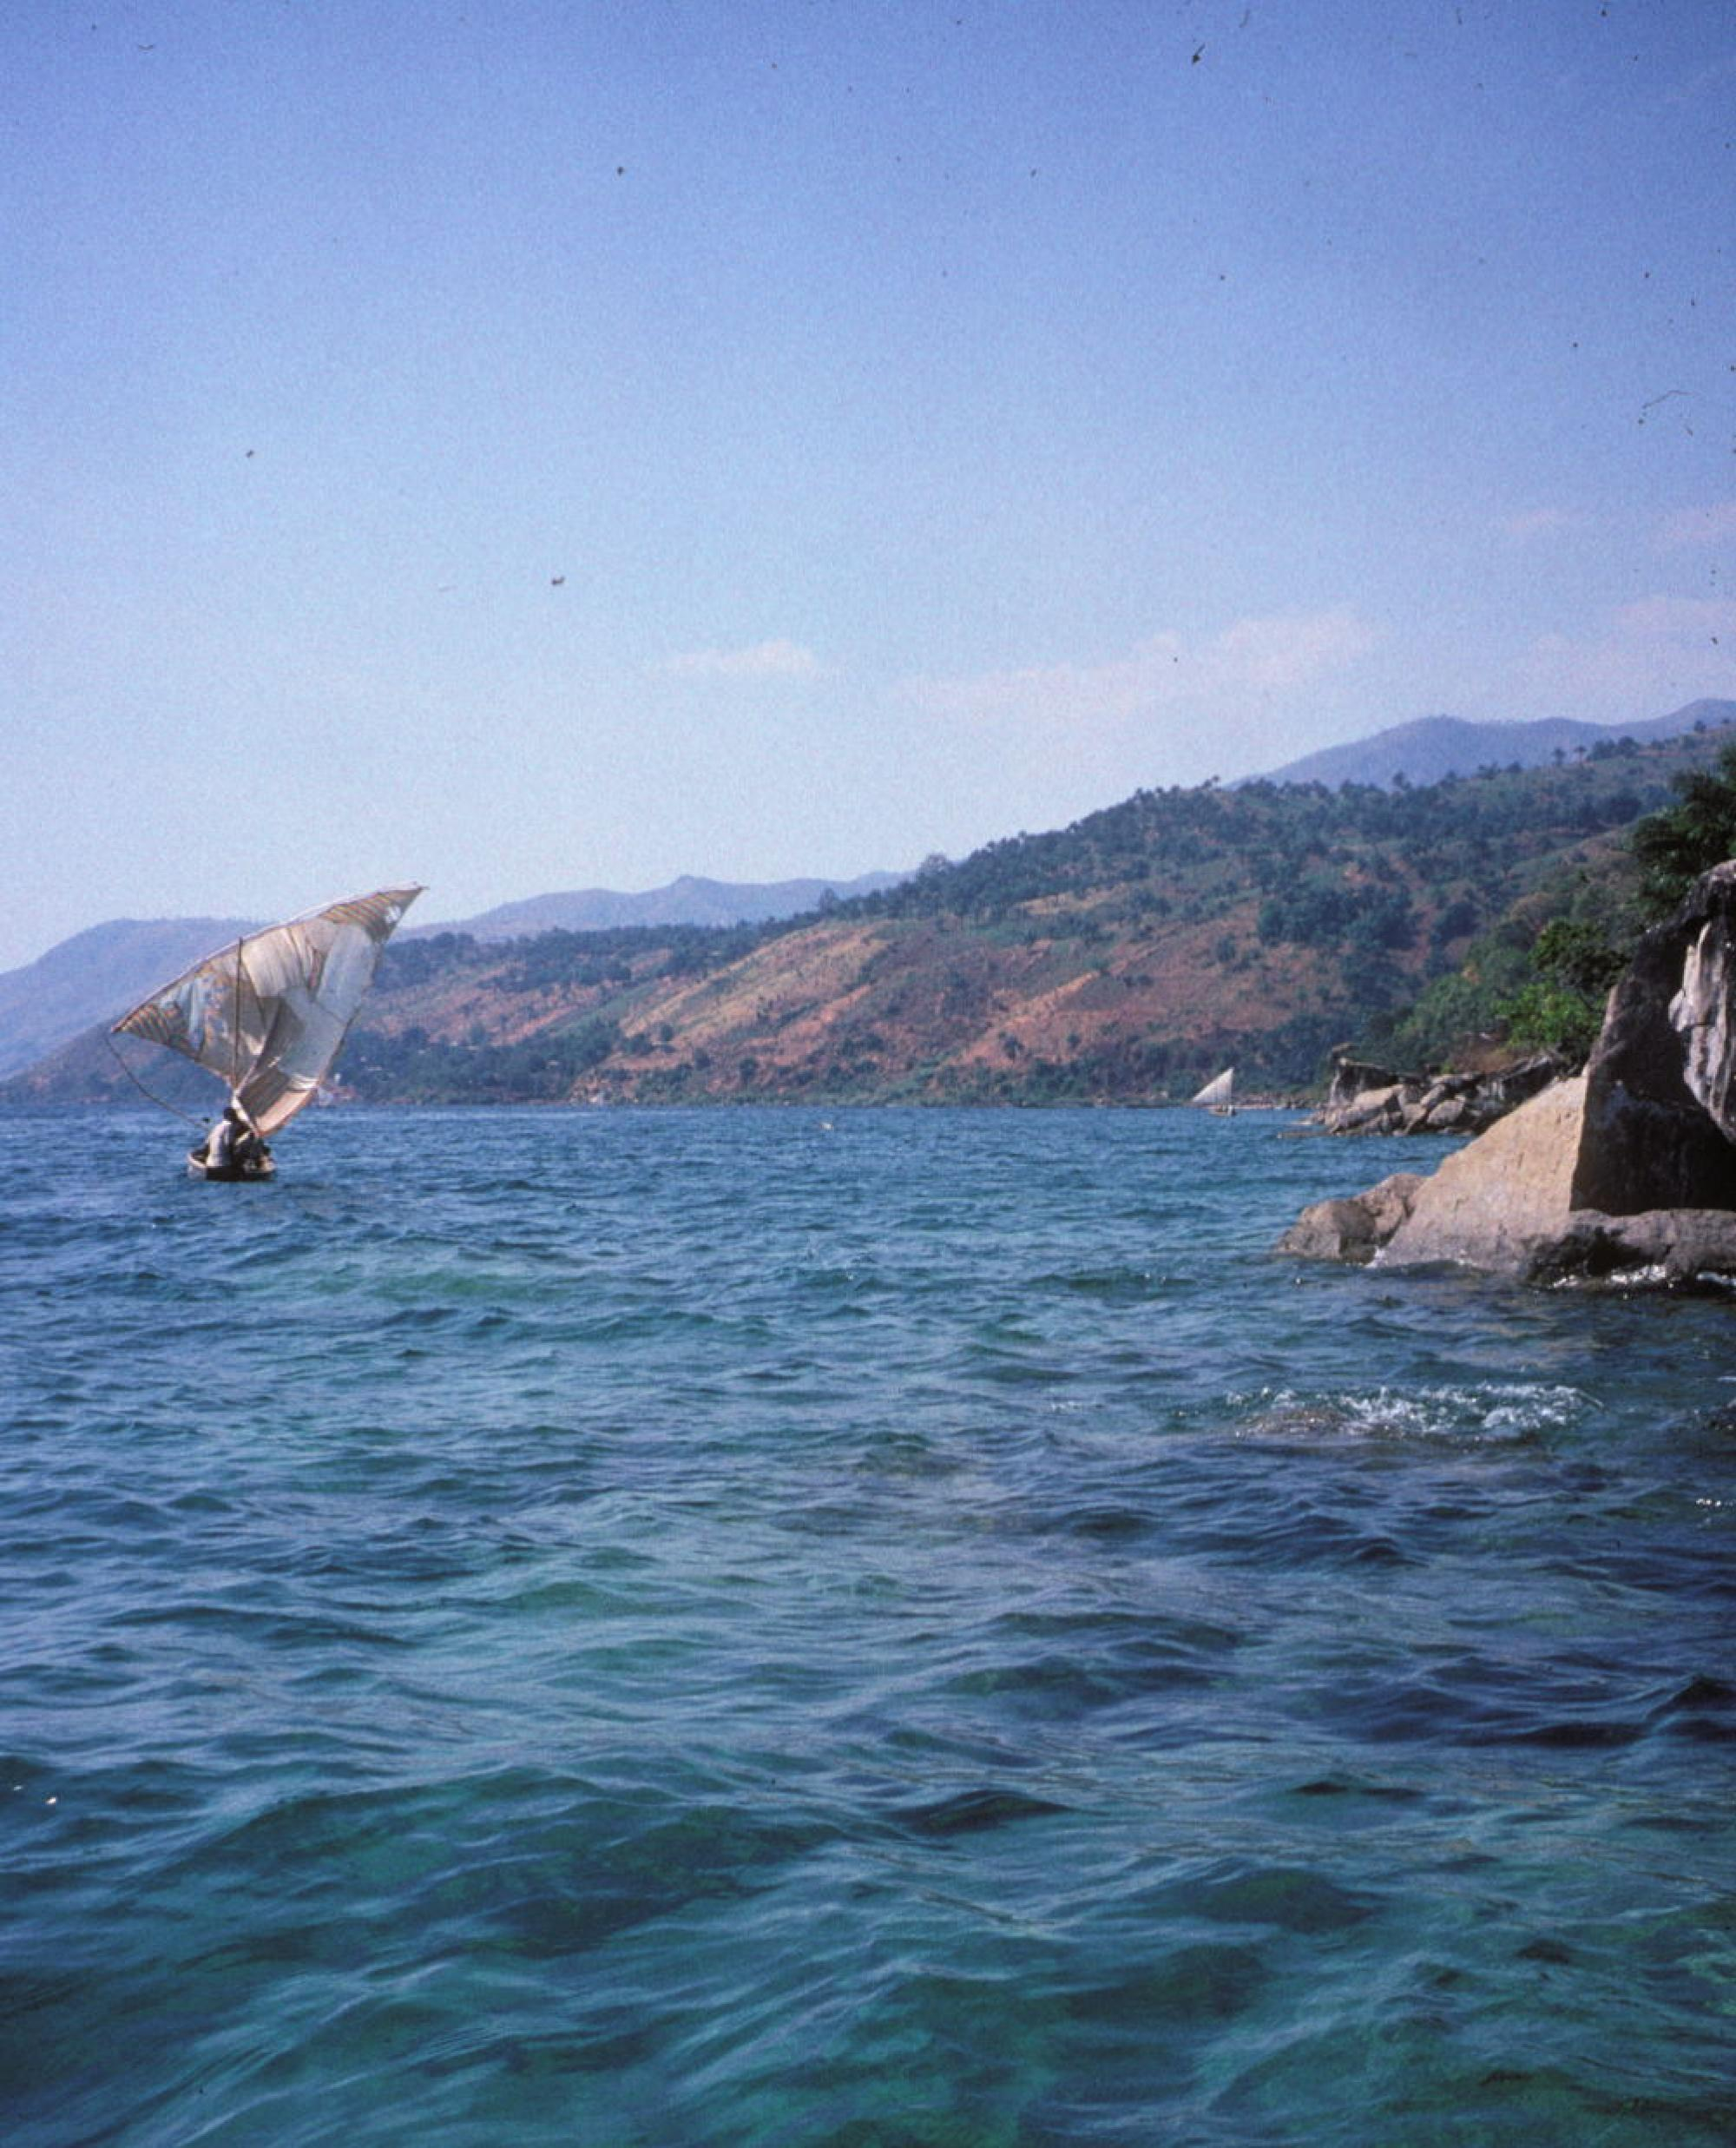 An artisanal fisher sails on Lake Tanganyika.